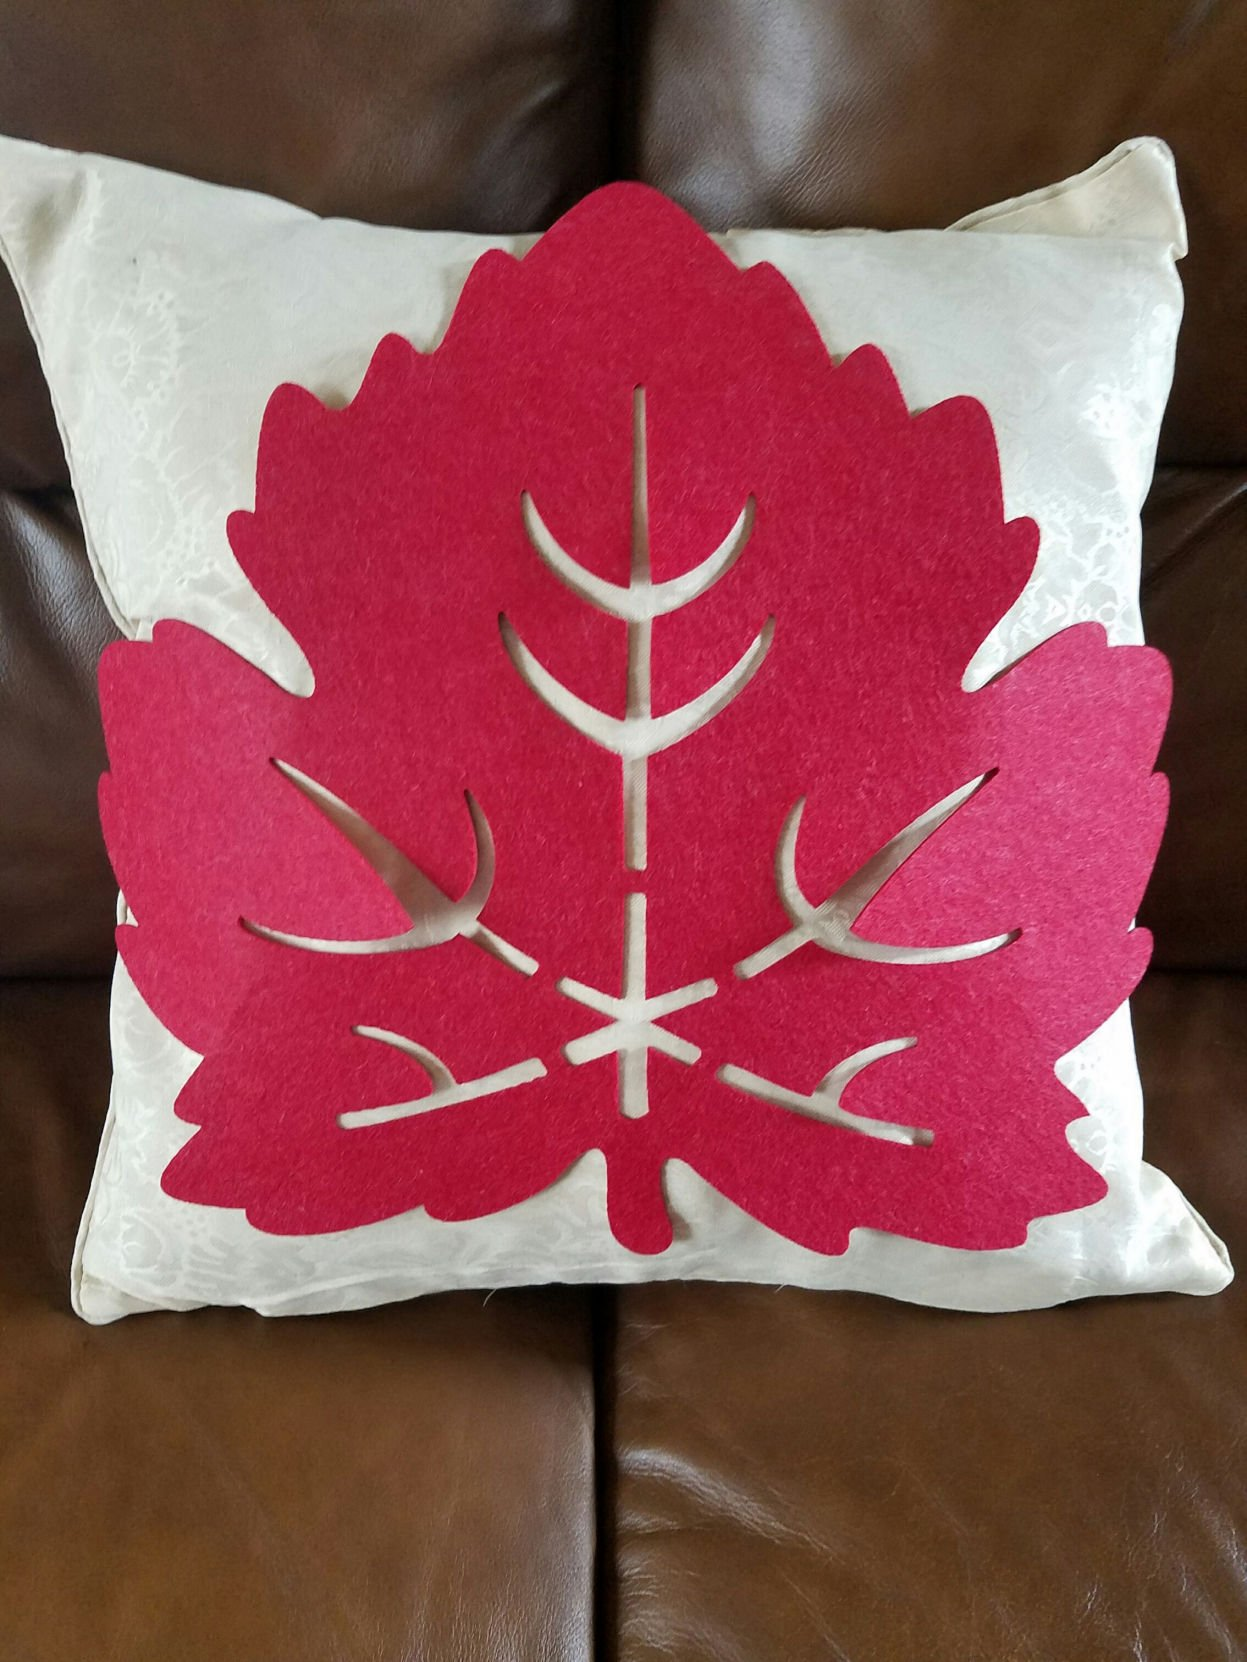 Get Your Home Decor Ready For Fall With These Easy Accessories At Home Kdhnews Com